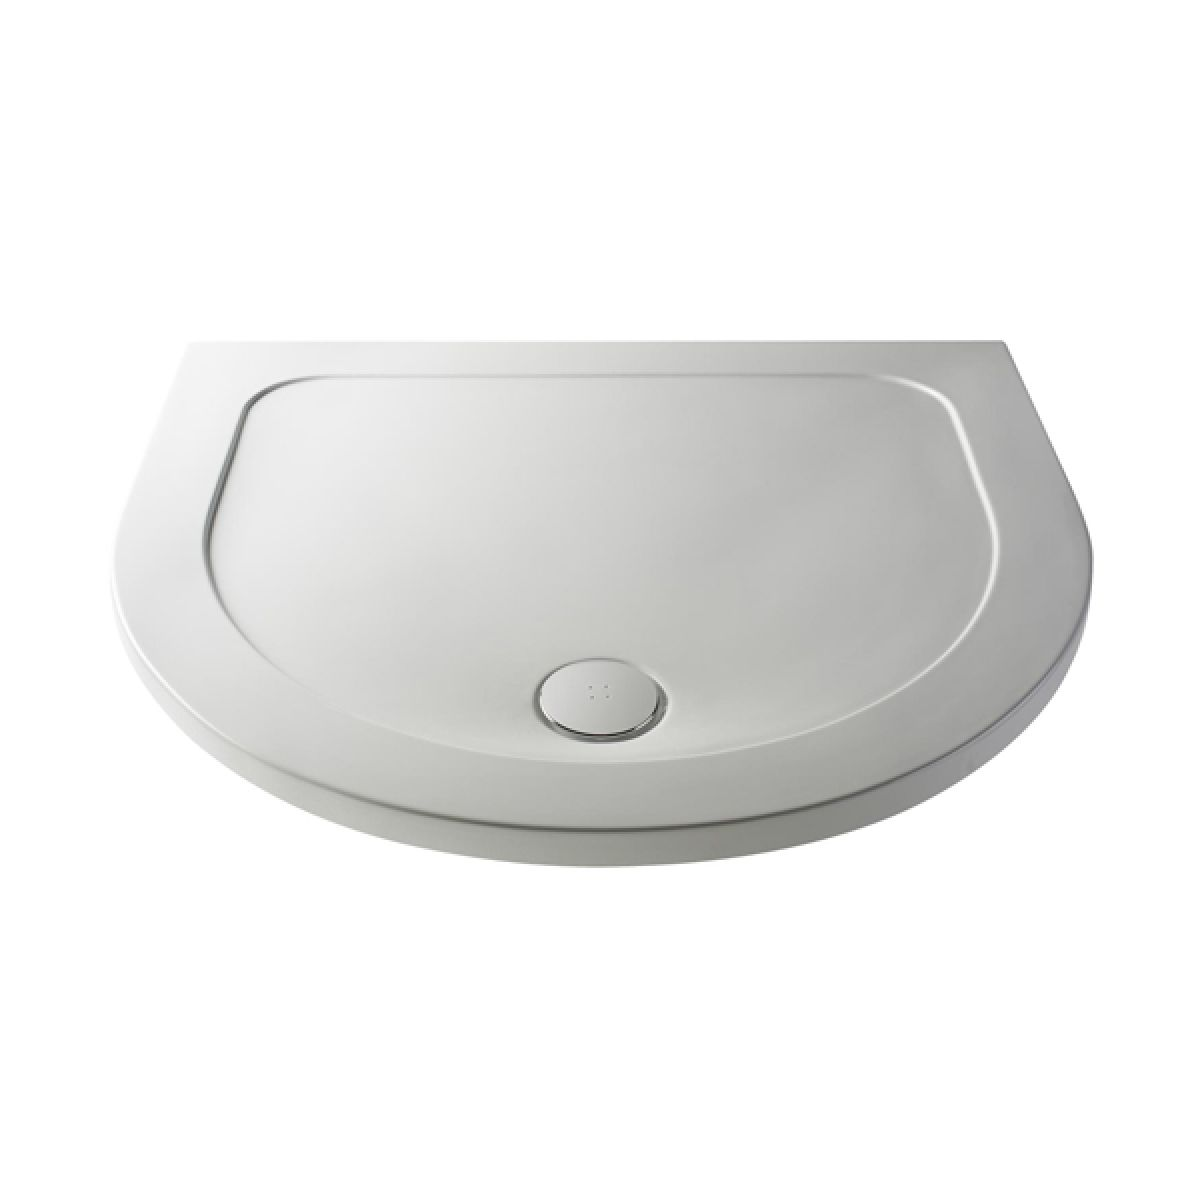 1050 Shower Tray D Shaped Low Profile by Pearlstone